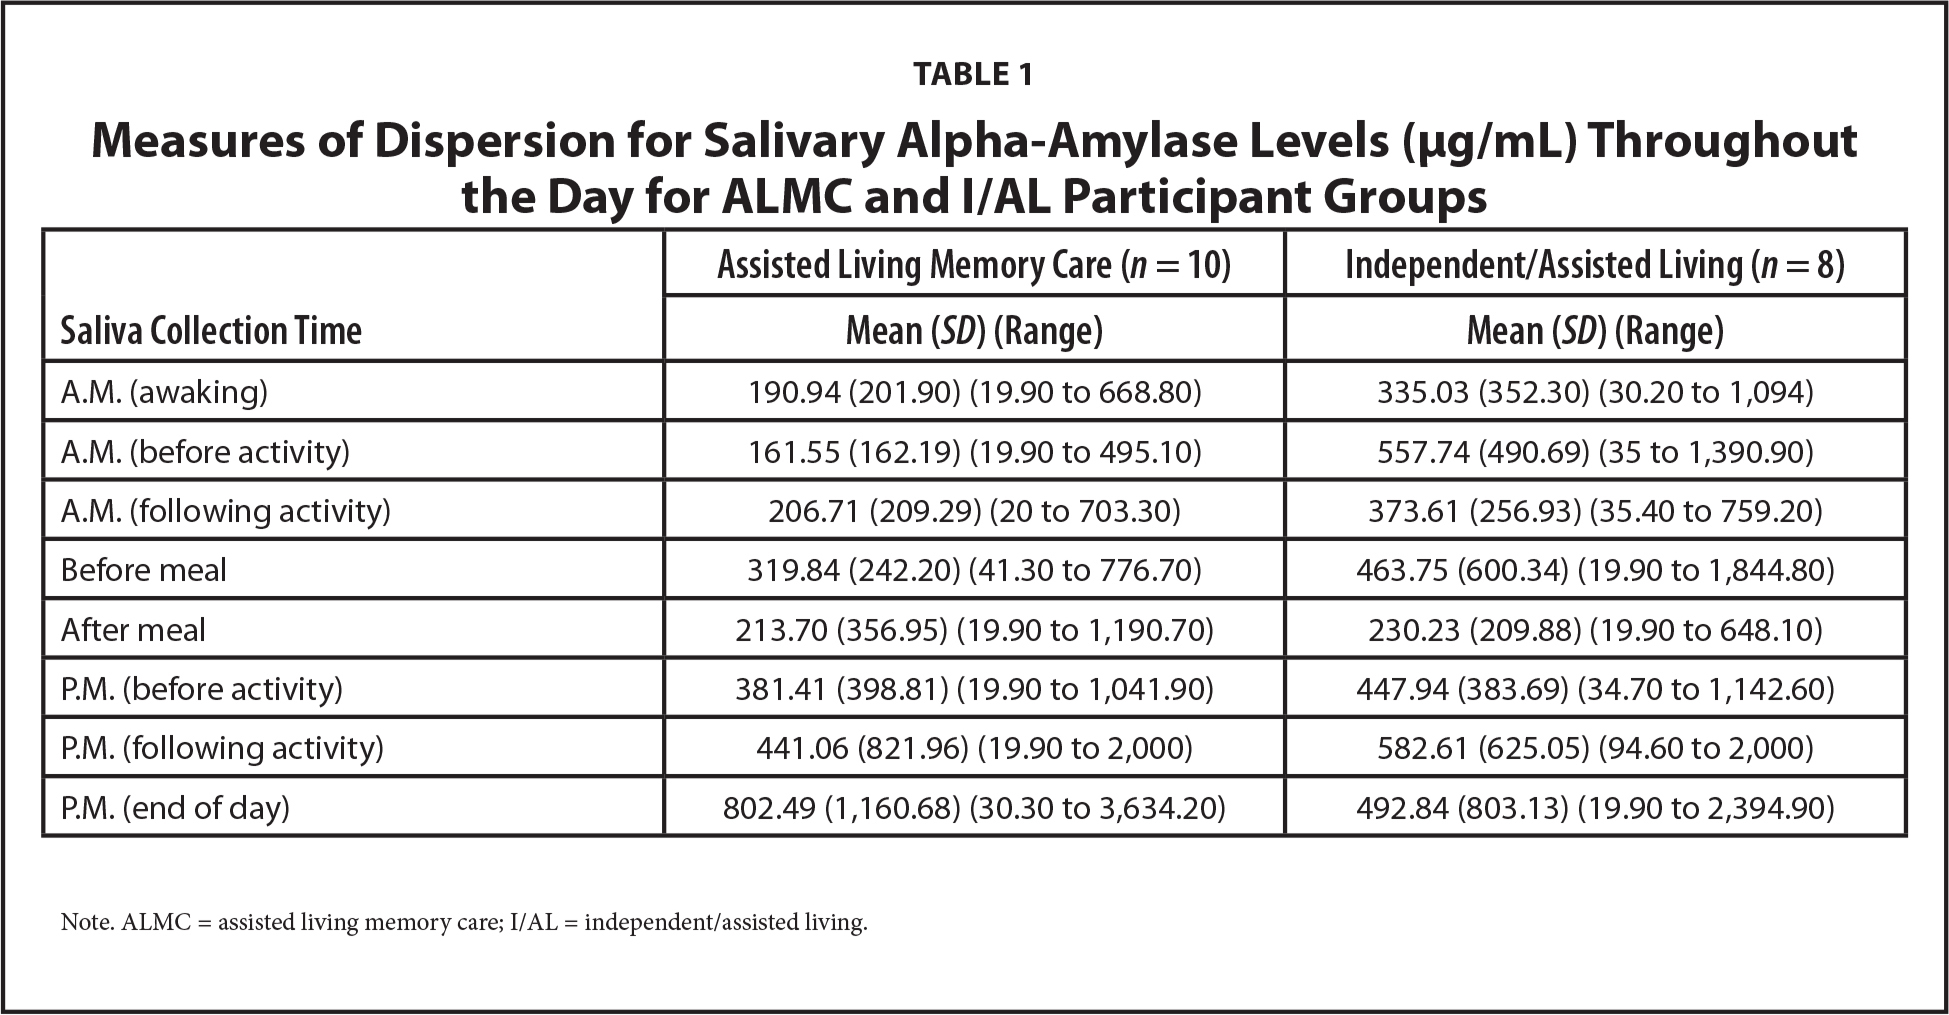 Measures of Dispersion for Salivary Alpha-Amylase Levels (μg/mL) Throughout the Day for ALMC and I/AL Participant Groups